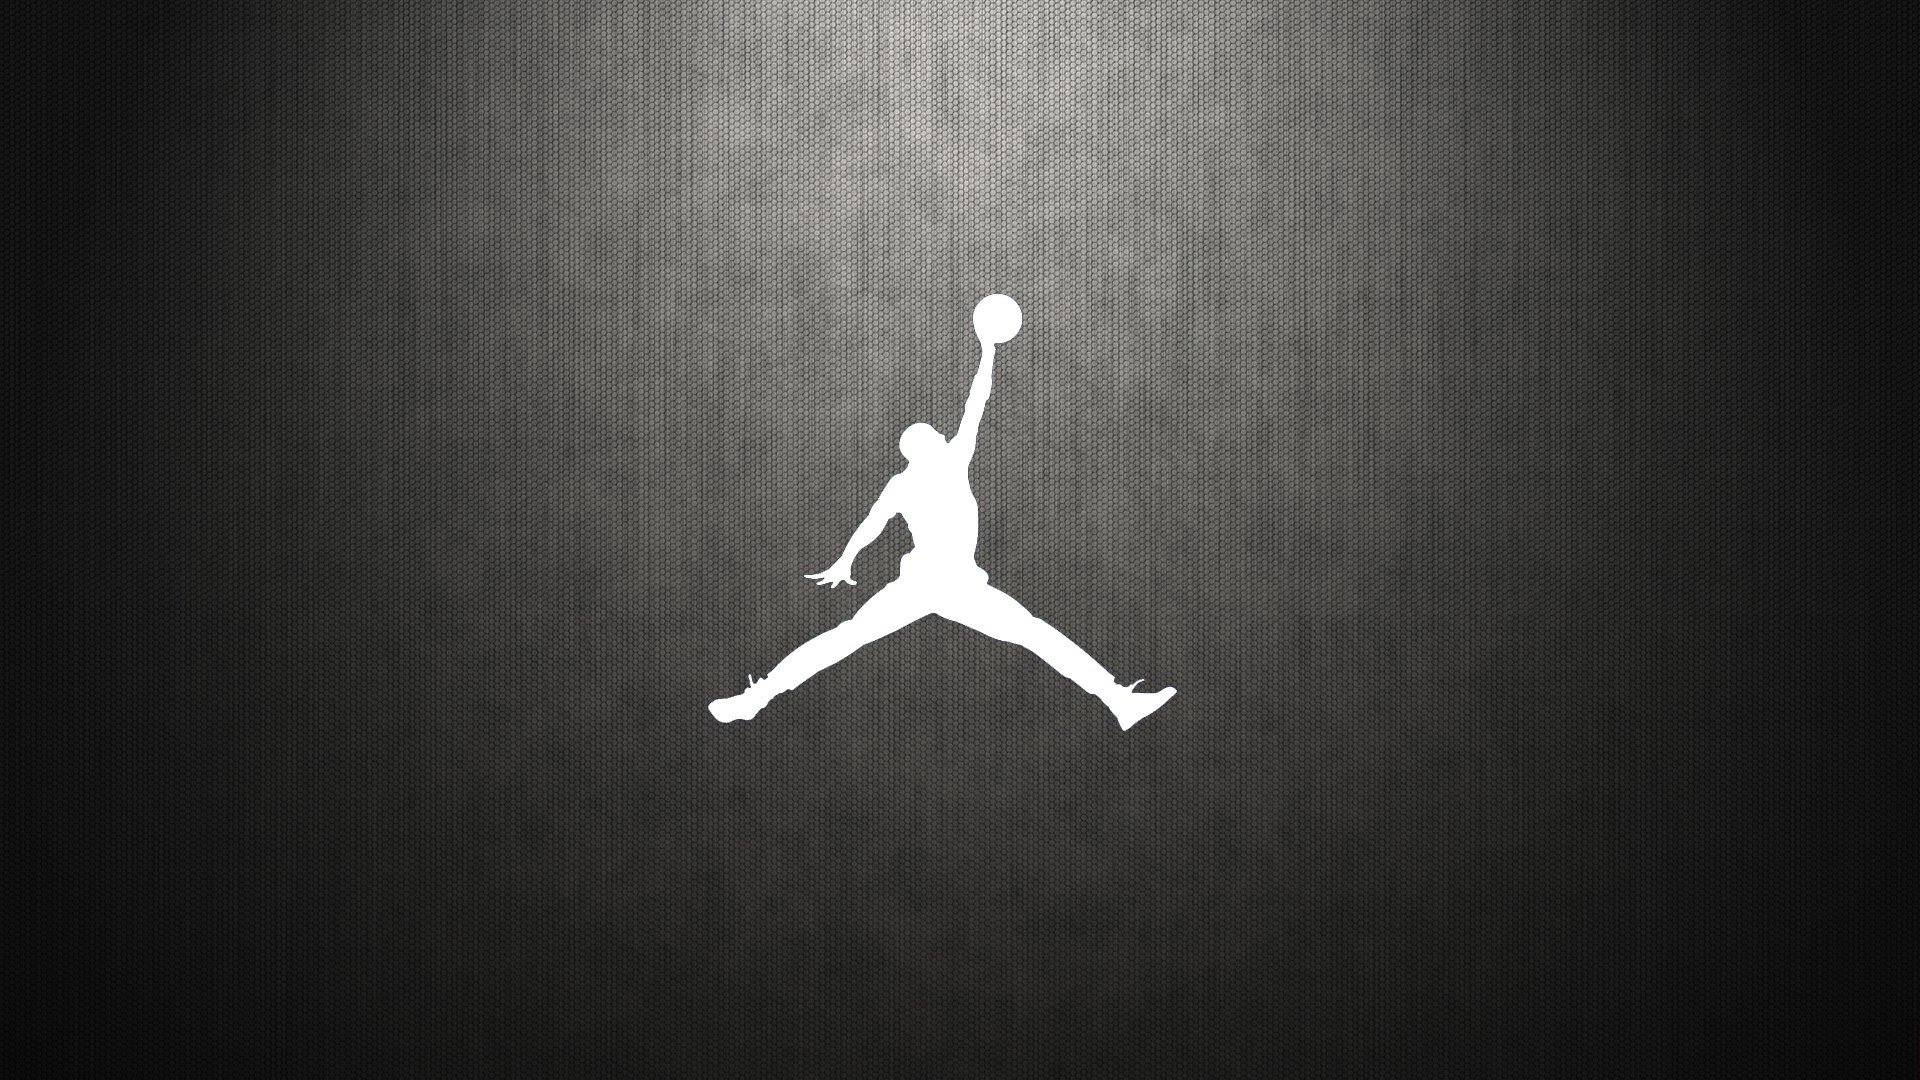 Inspirational Sports Quotes Wallpaper For Iphone Free Download Nike Black Desktop Hd Backgrounds